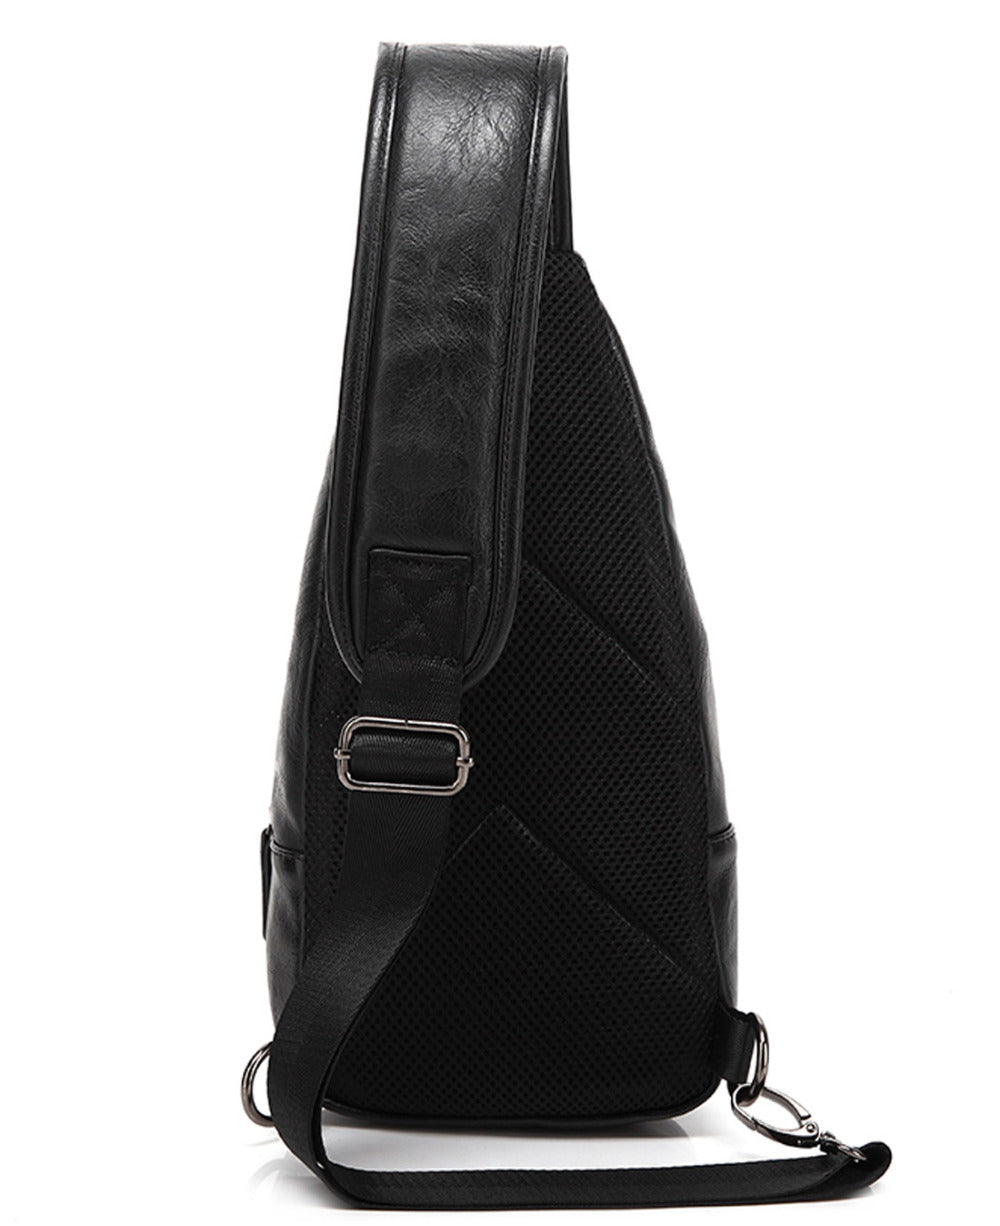 The BAKER one shoulder bag